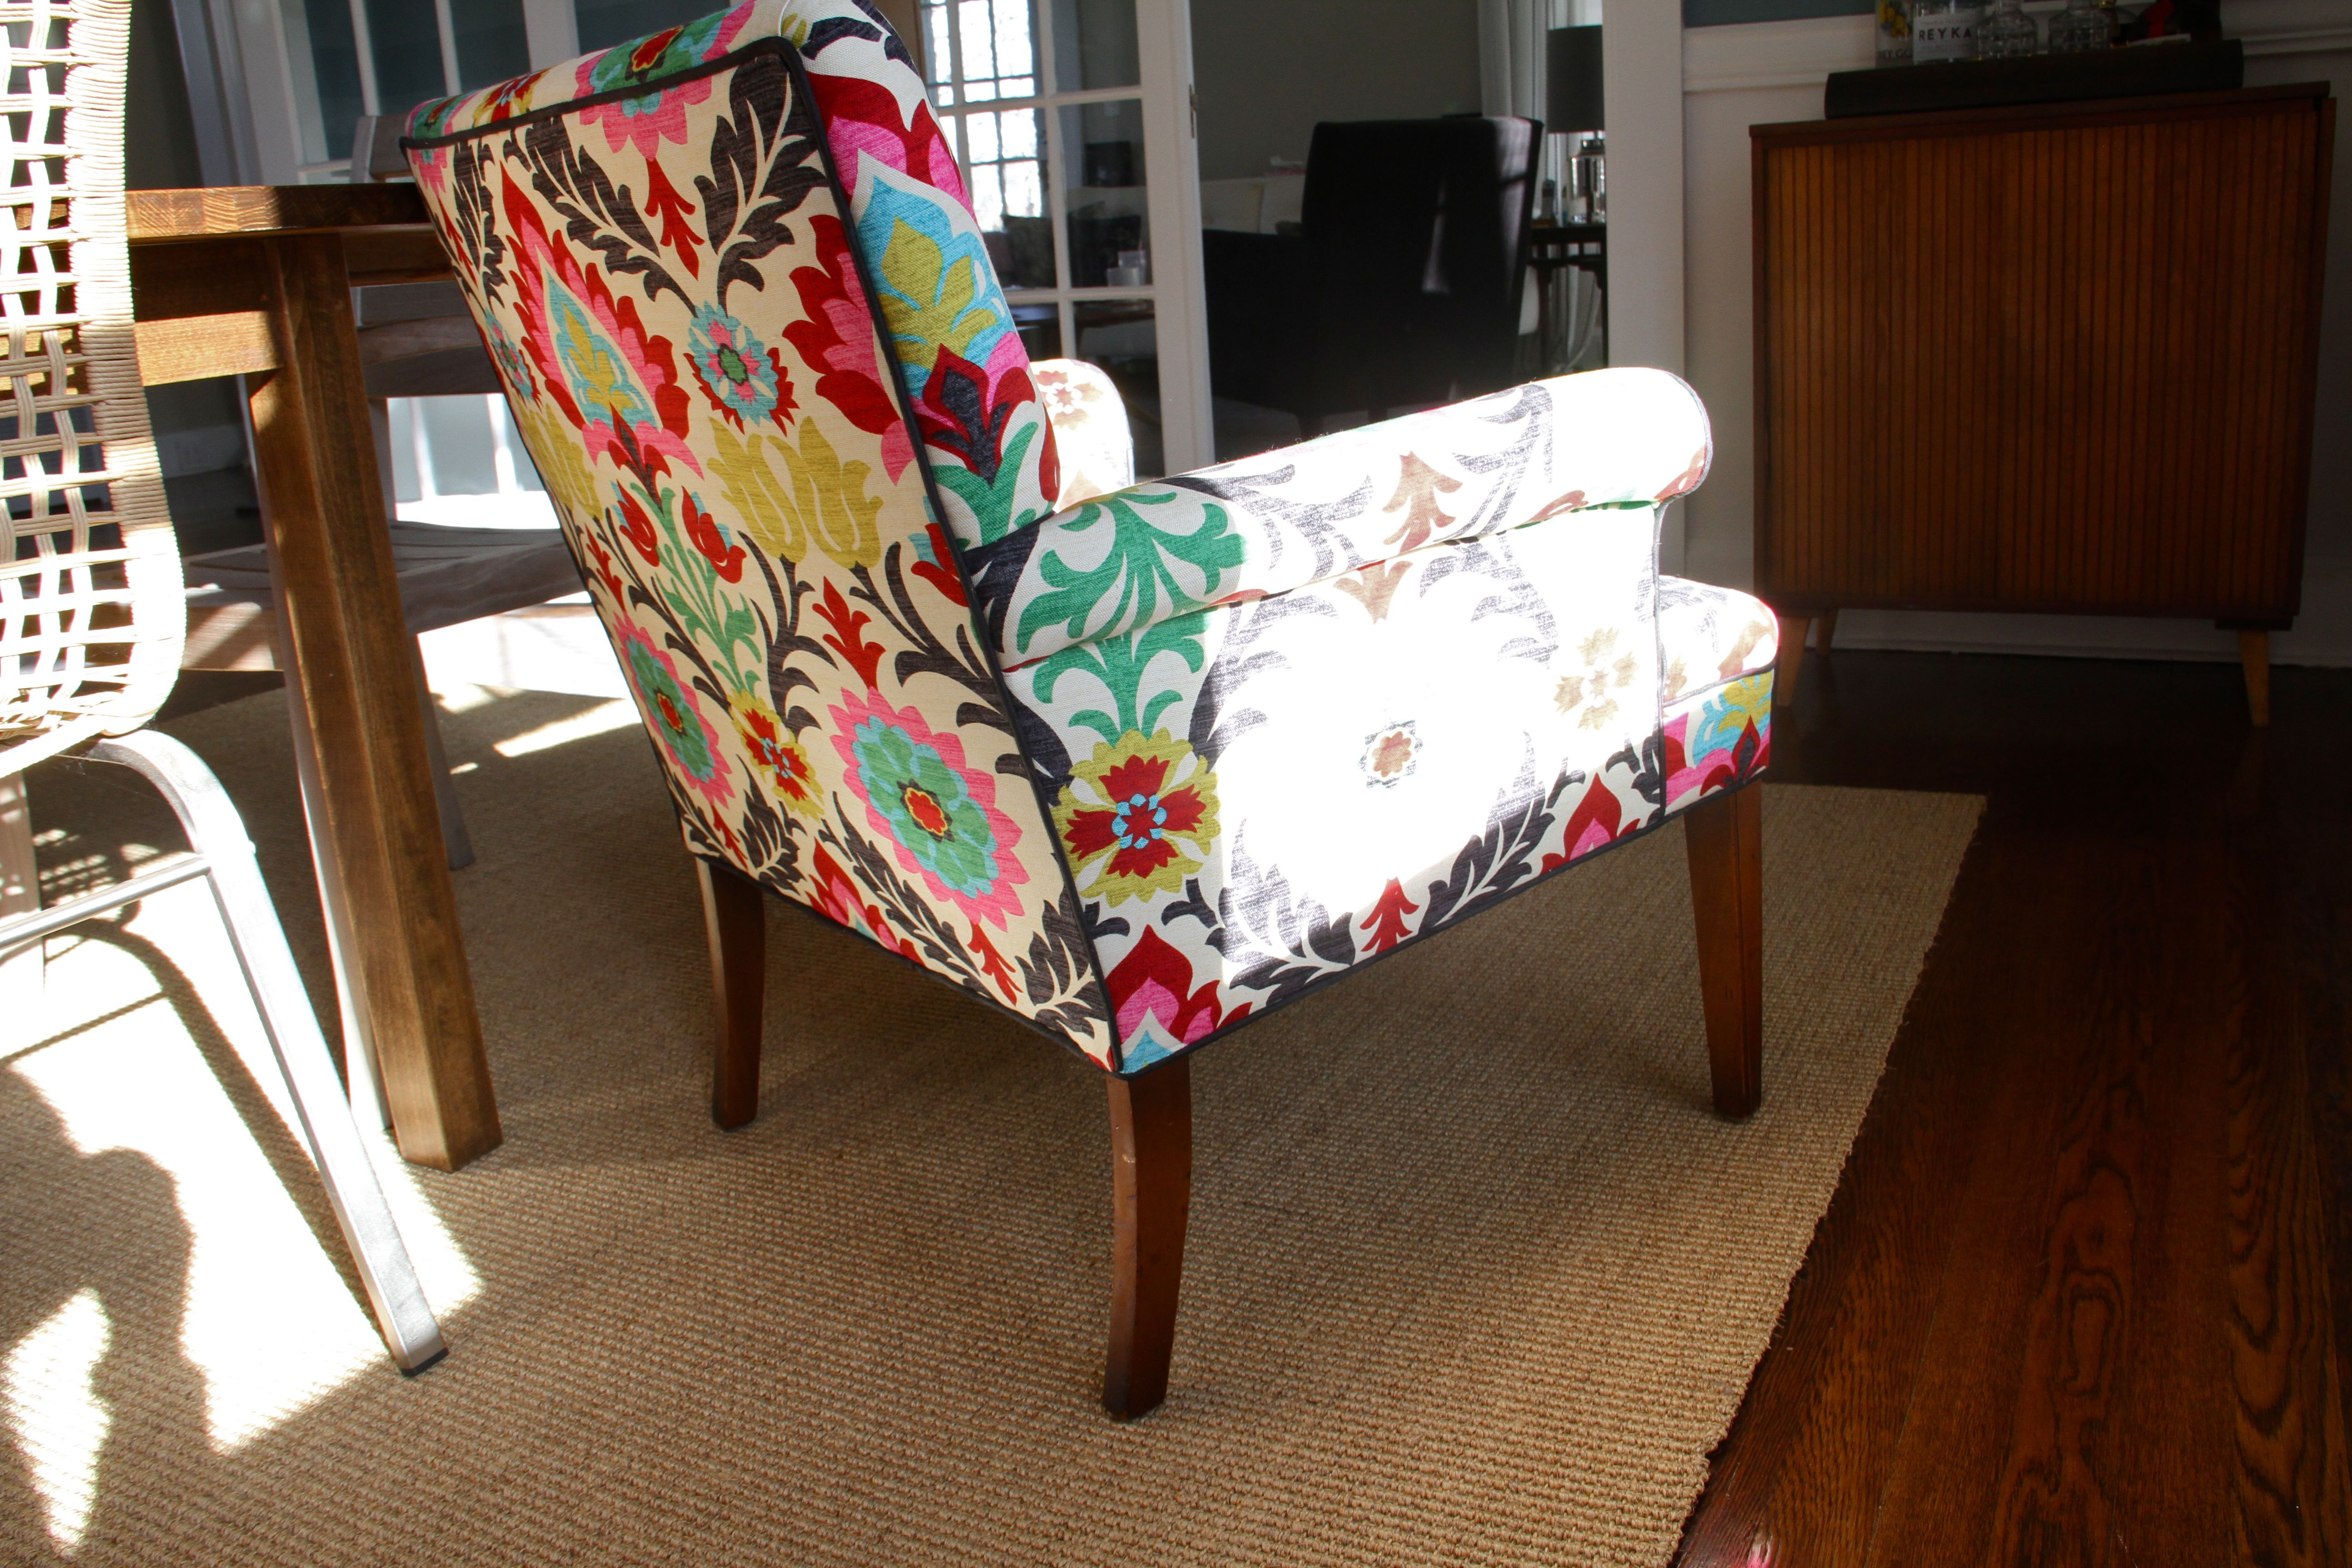 AFTER: The lively fabric makes the back of this chair exciting and stimulating. Plus, the flatness of the shape is balanced by the curves and boldness of the pattern.